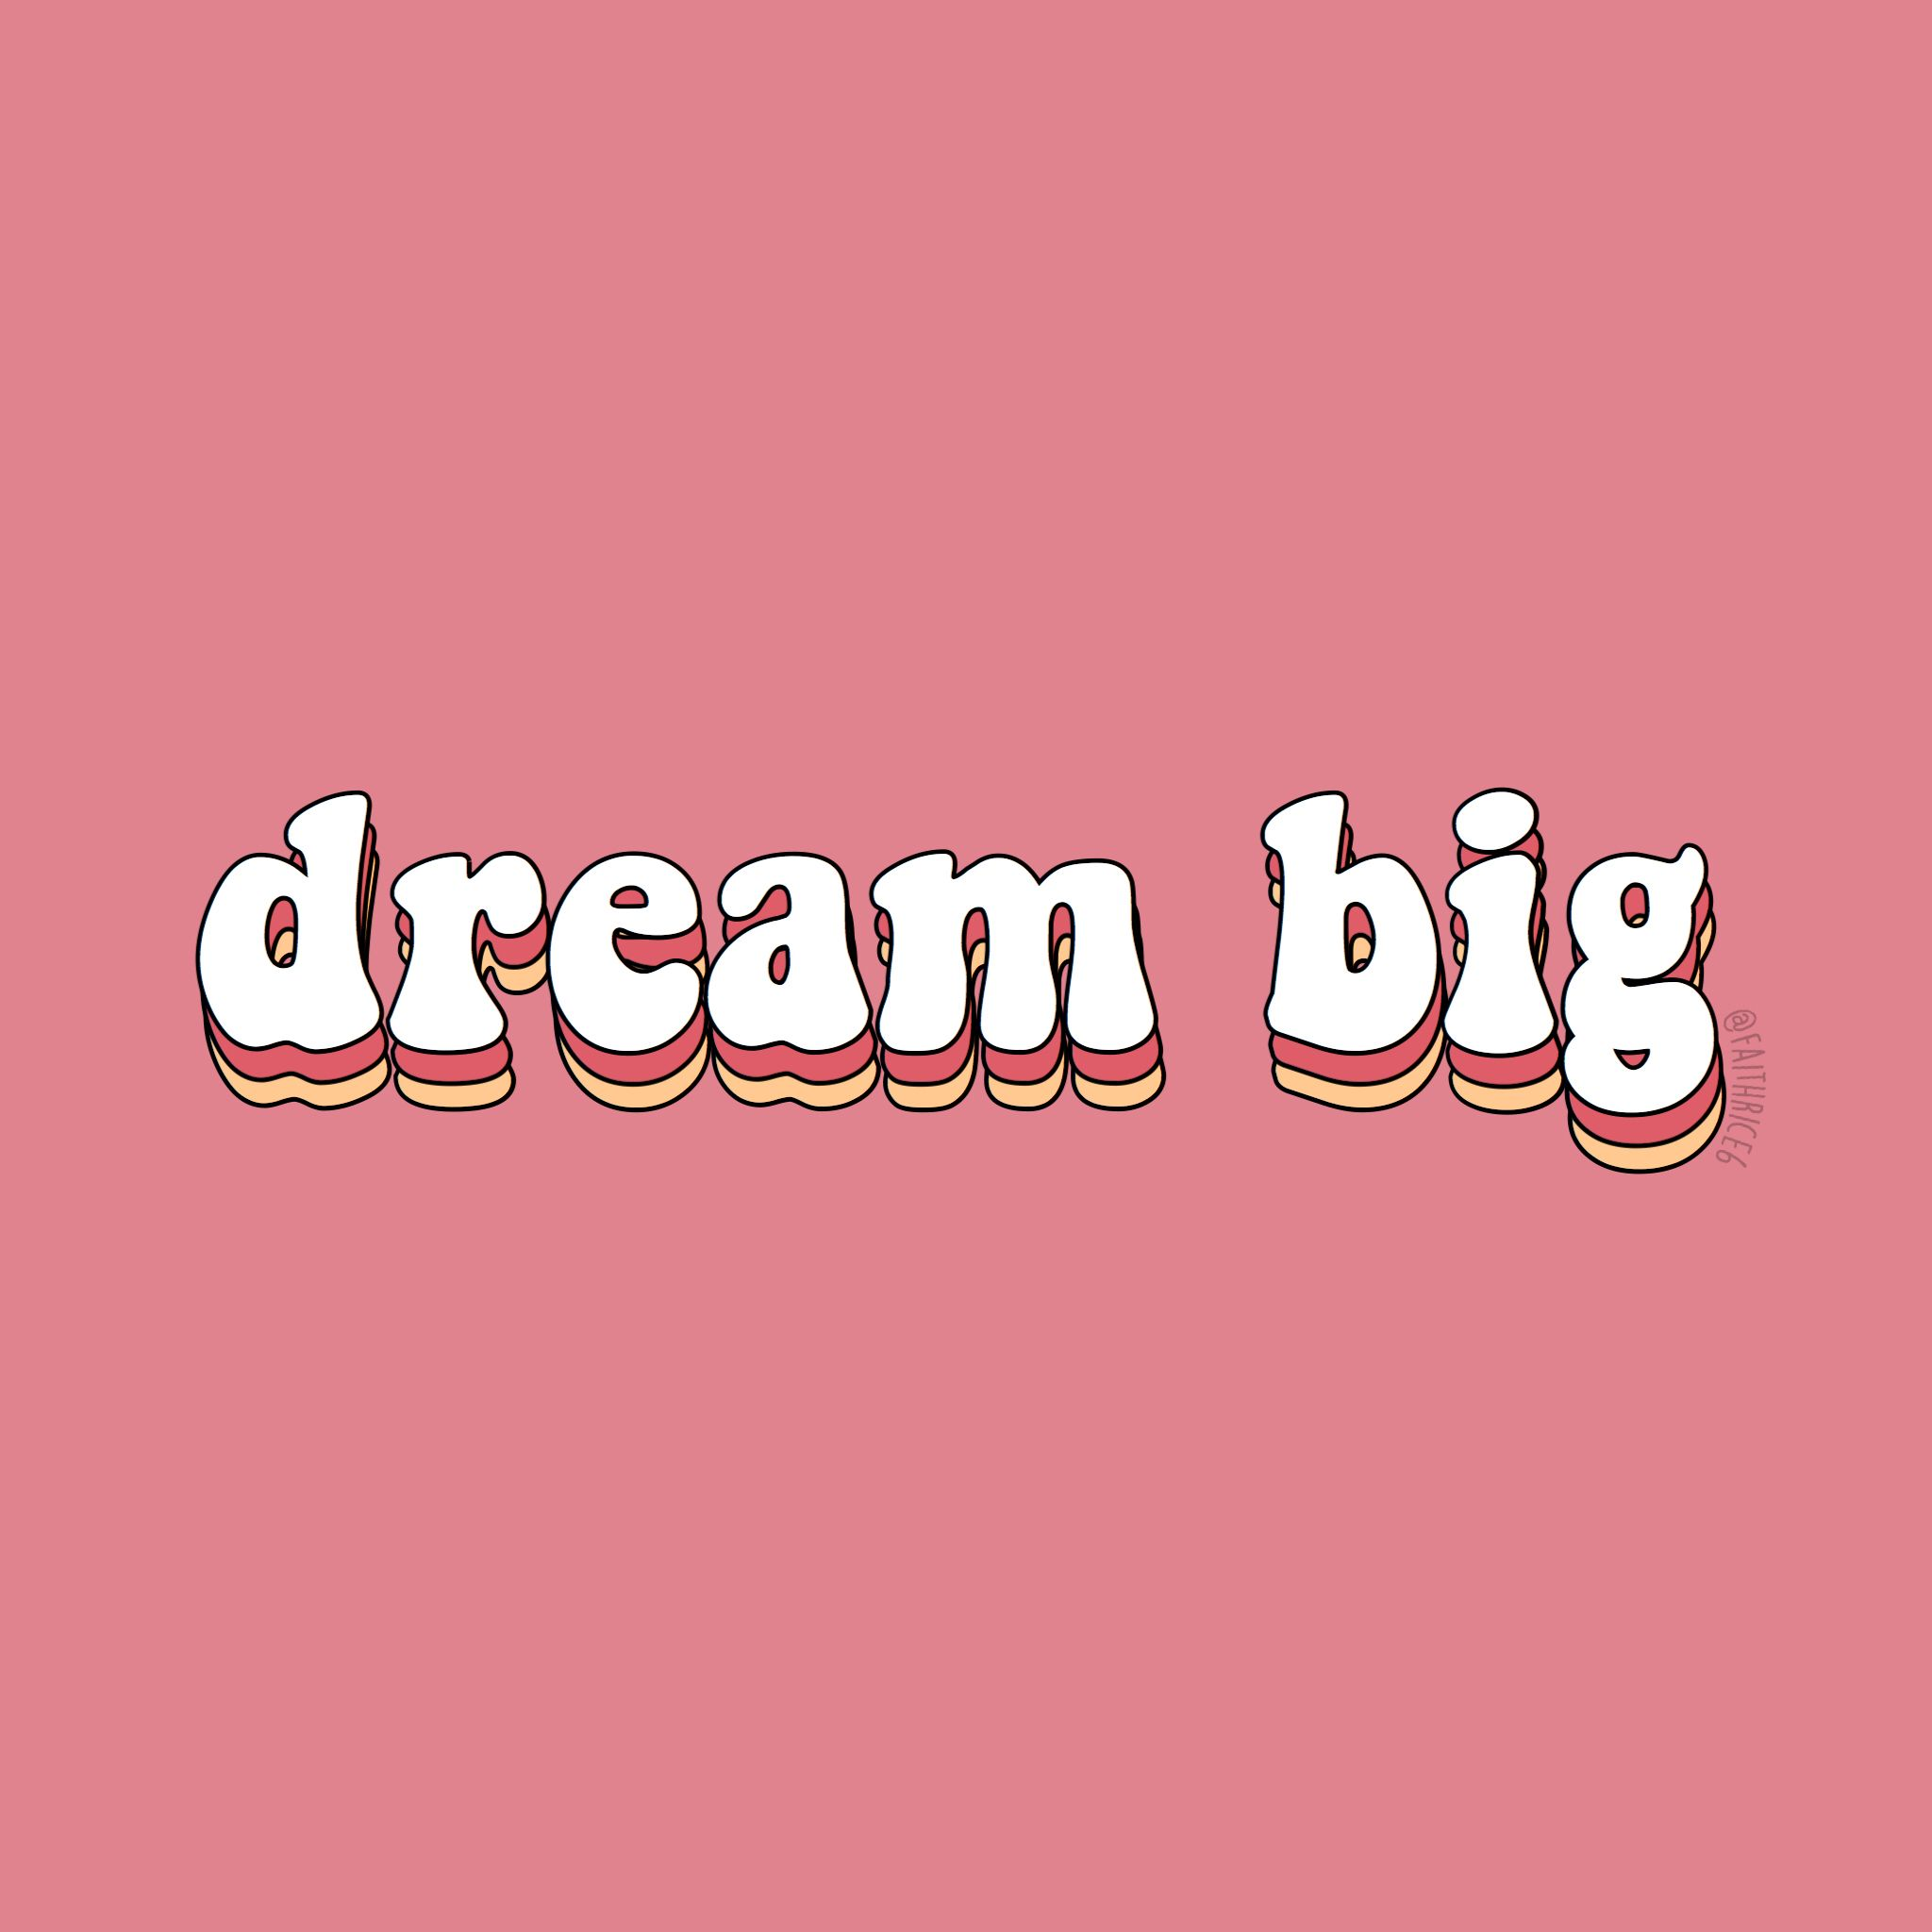 Pinterest Faithrice6 Cute Quotes Stay Positive Quotes Quote Aesthetic Aesthetic bubble letters wallpaper